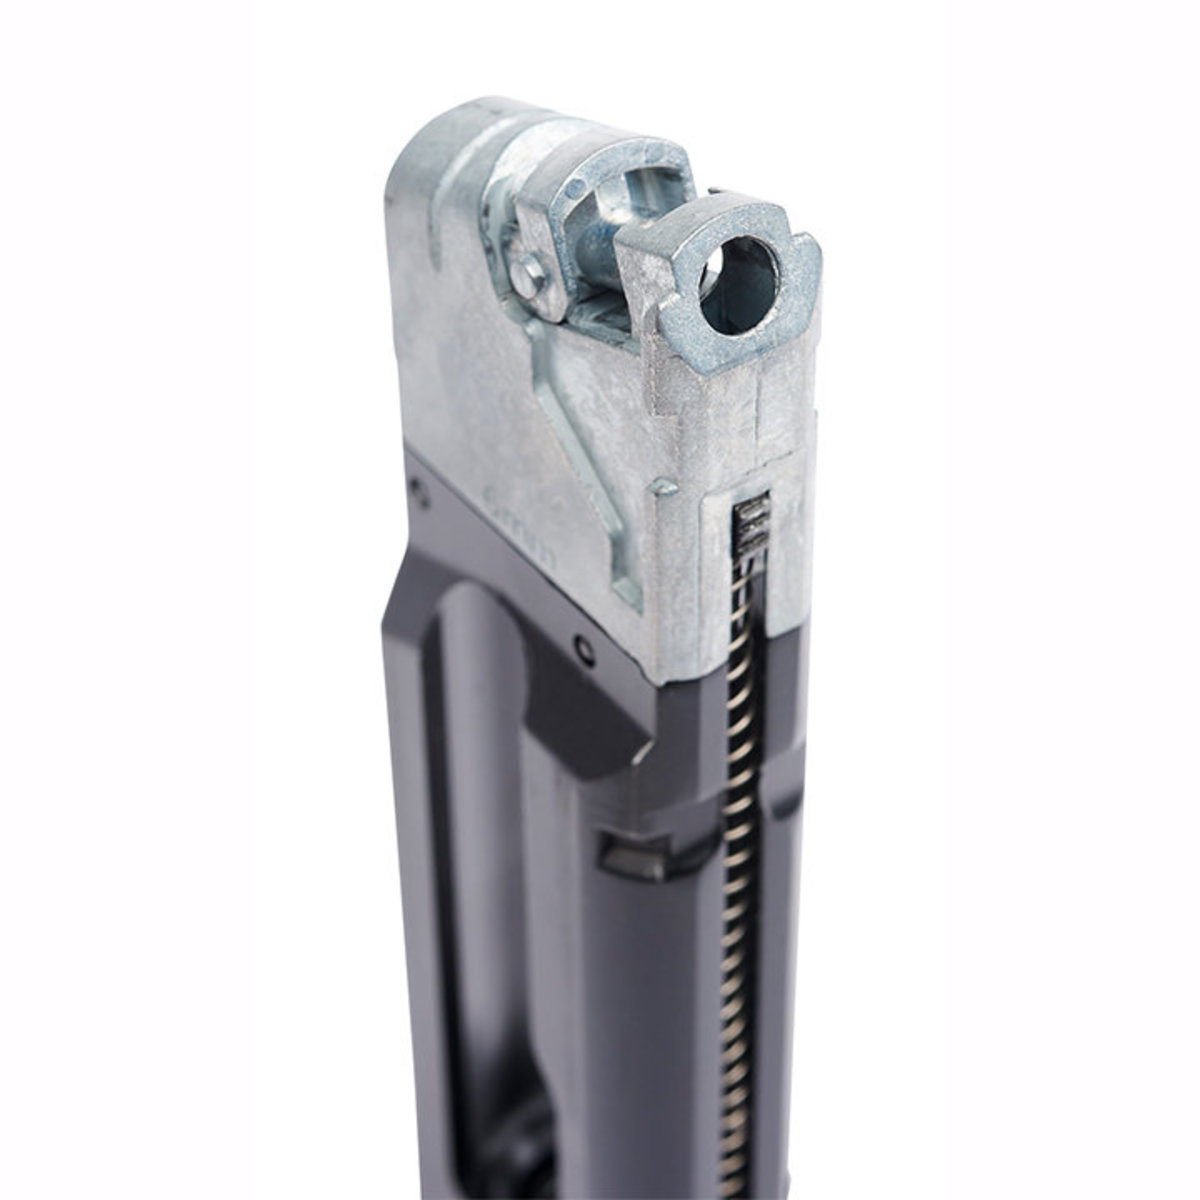 View larger image of Umarex 20rd GLOCK 19X CO2 Airsoft Magazine